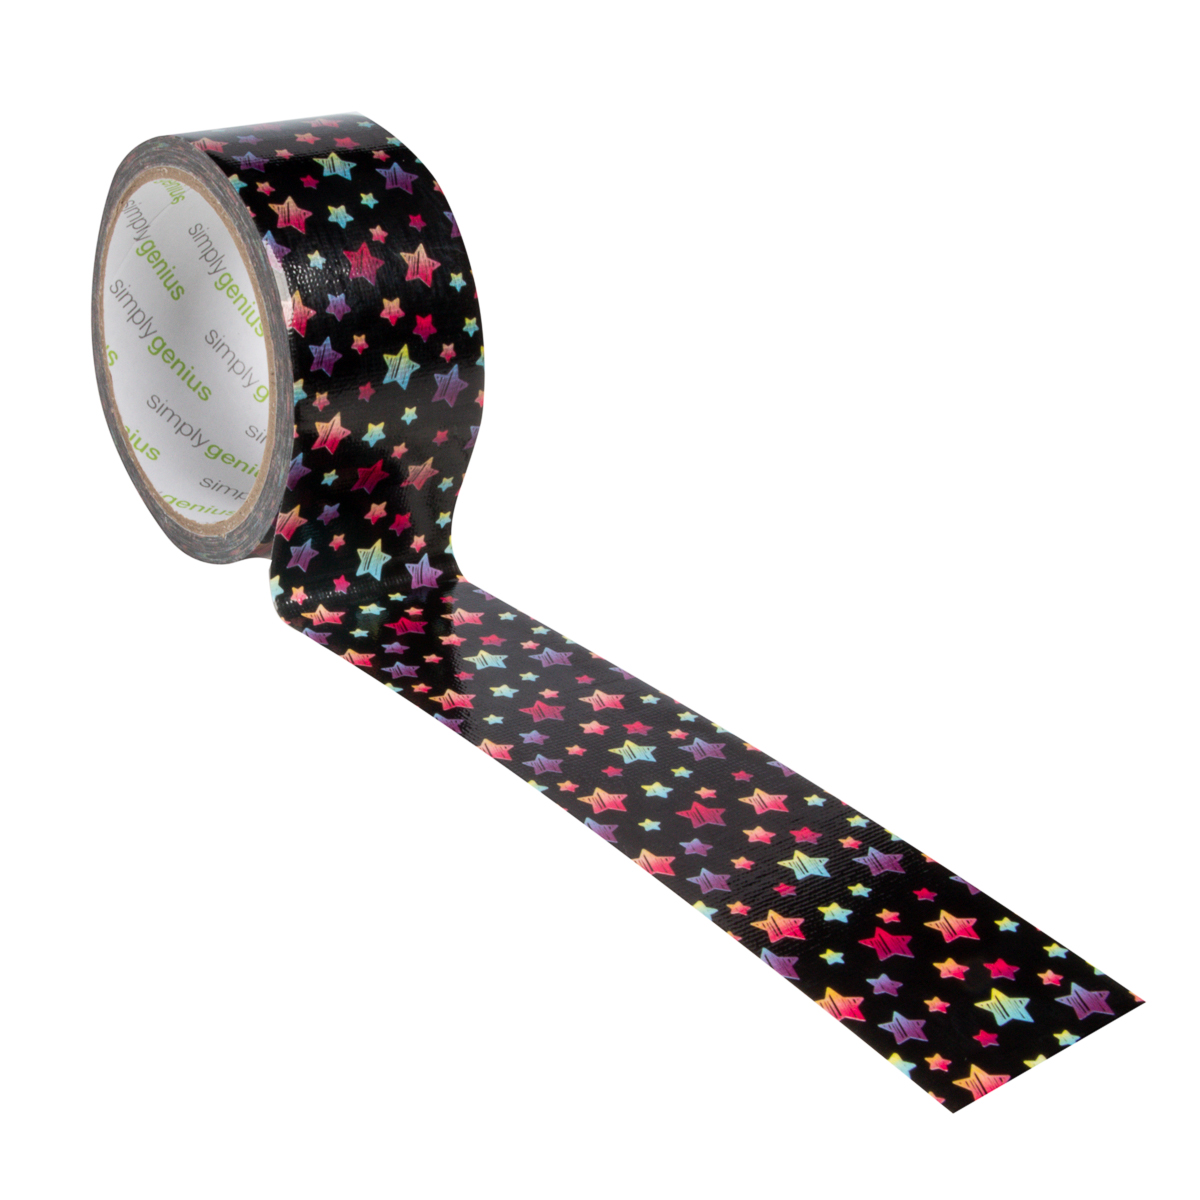 Simply-Genius-Duct-Tape-Roll-Colors-Patterns-Craft-Supplies-Colored-amp-Patterned thumbnail 93